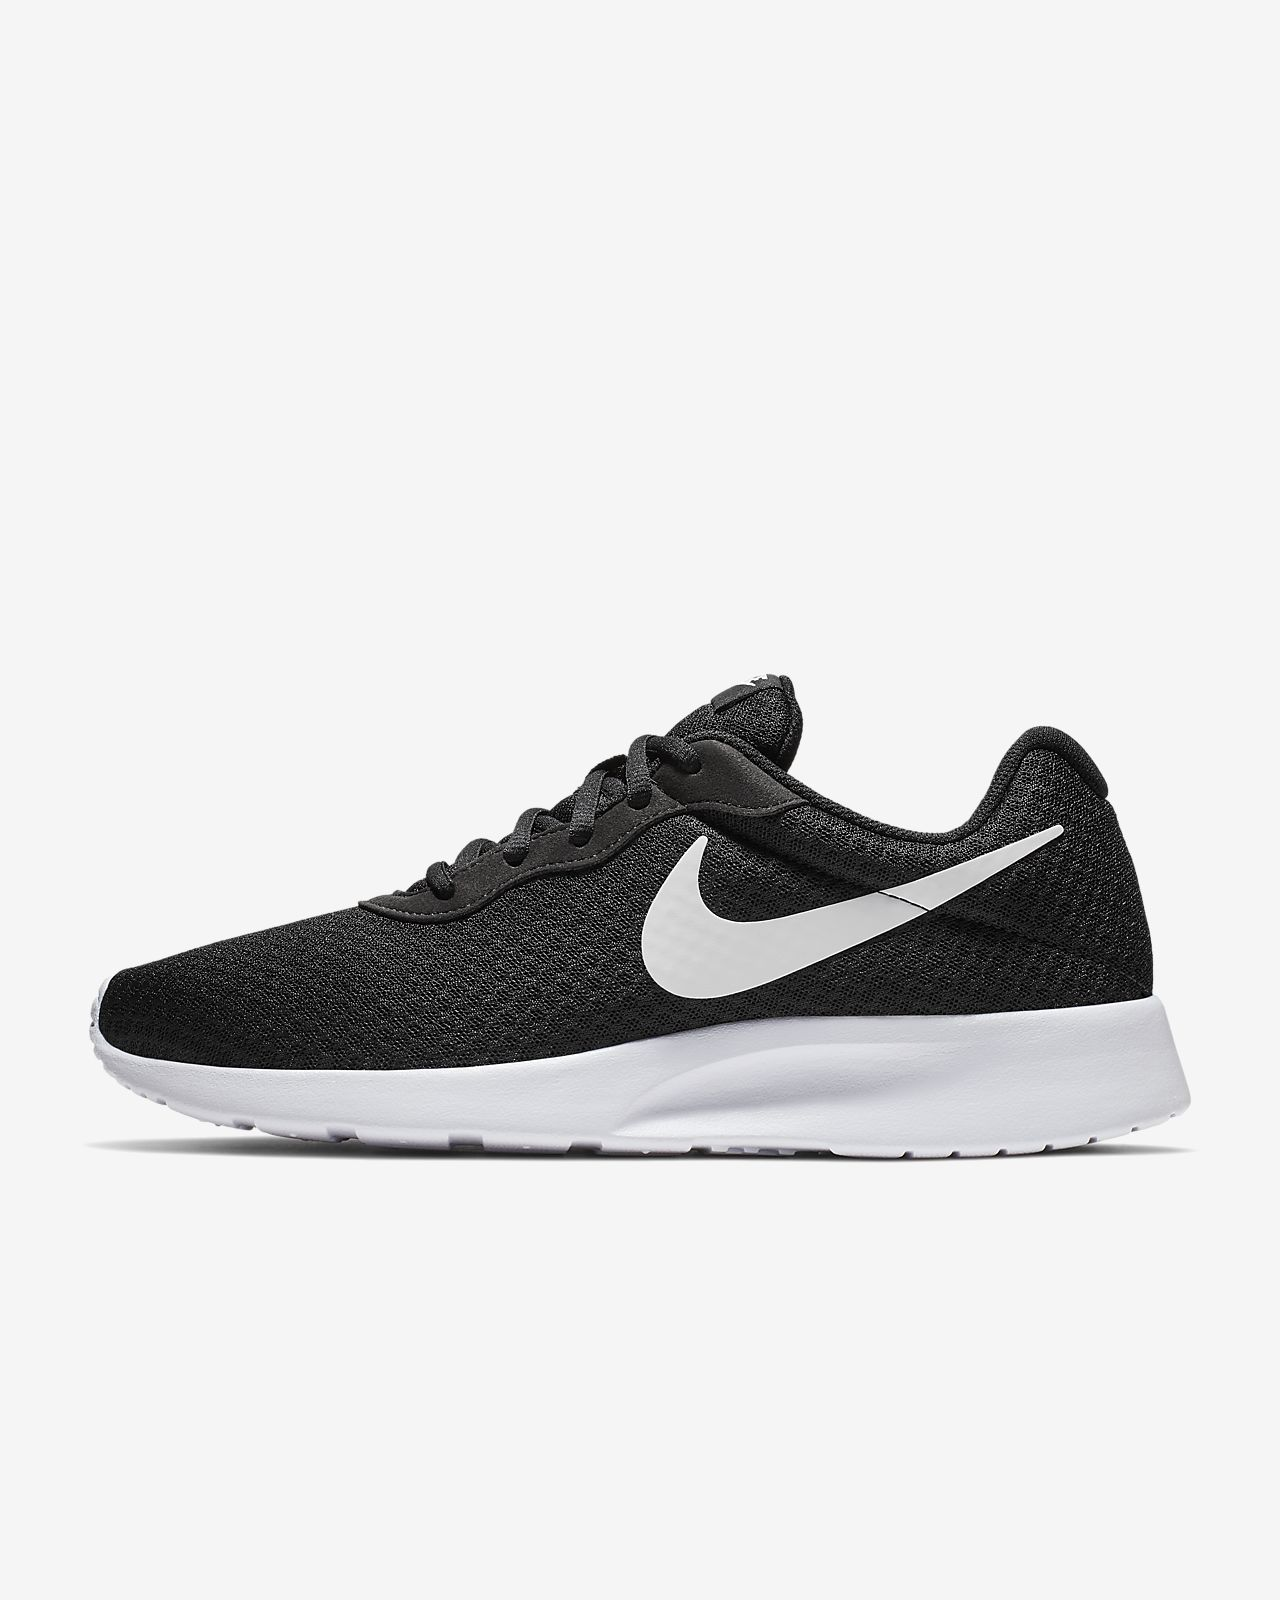 Low Resolution Nike Tanjun Men s Shoe Nike Tanjun Men s Shoe ca470cc03